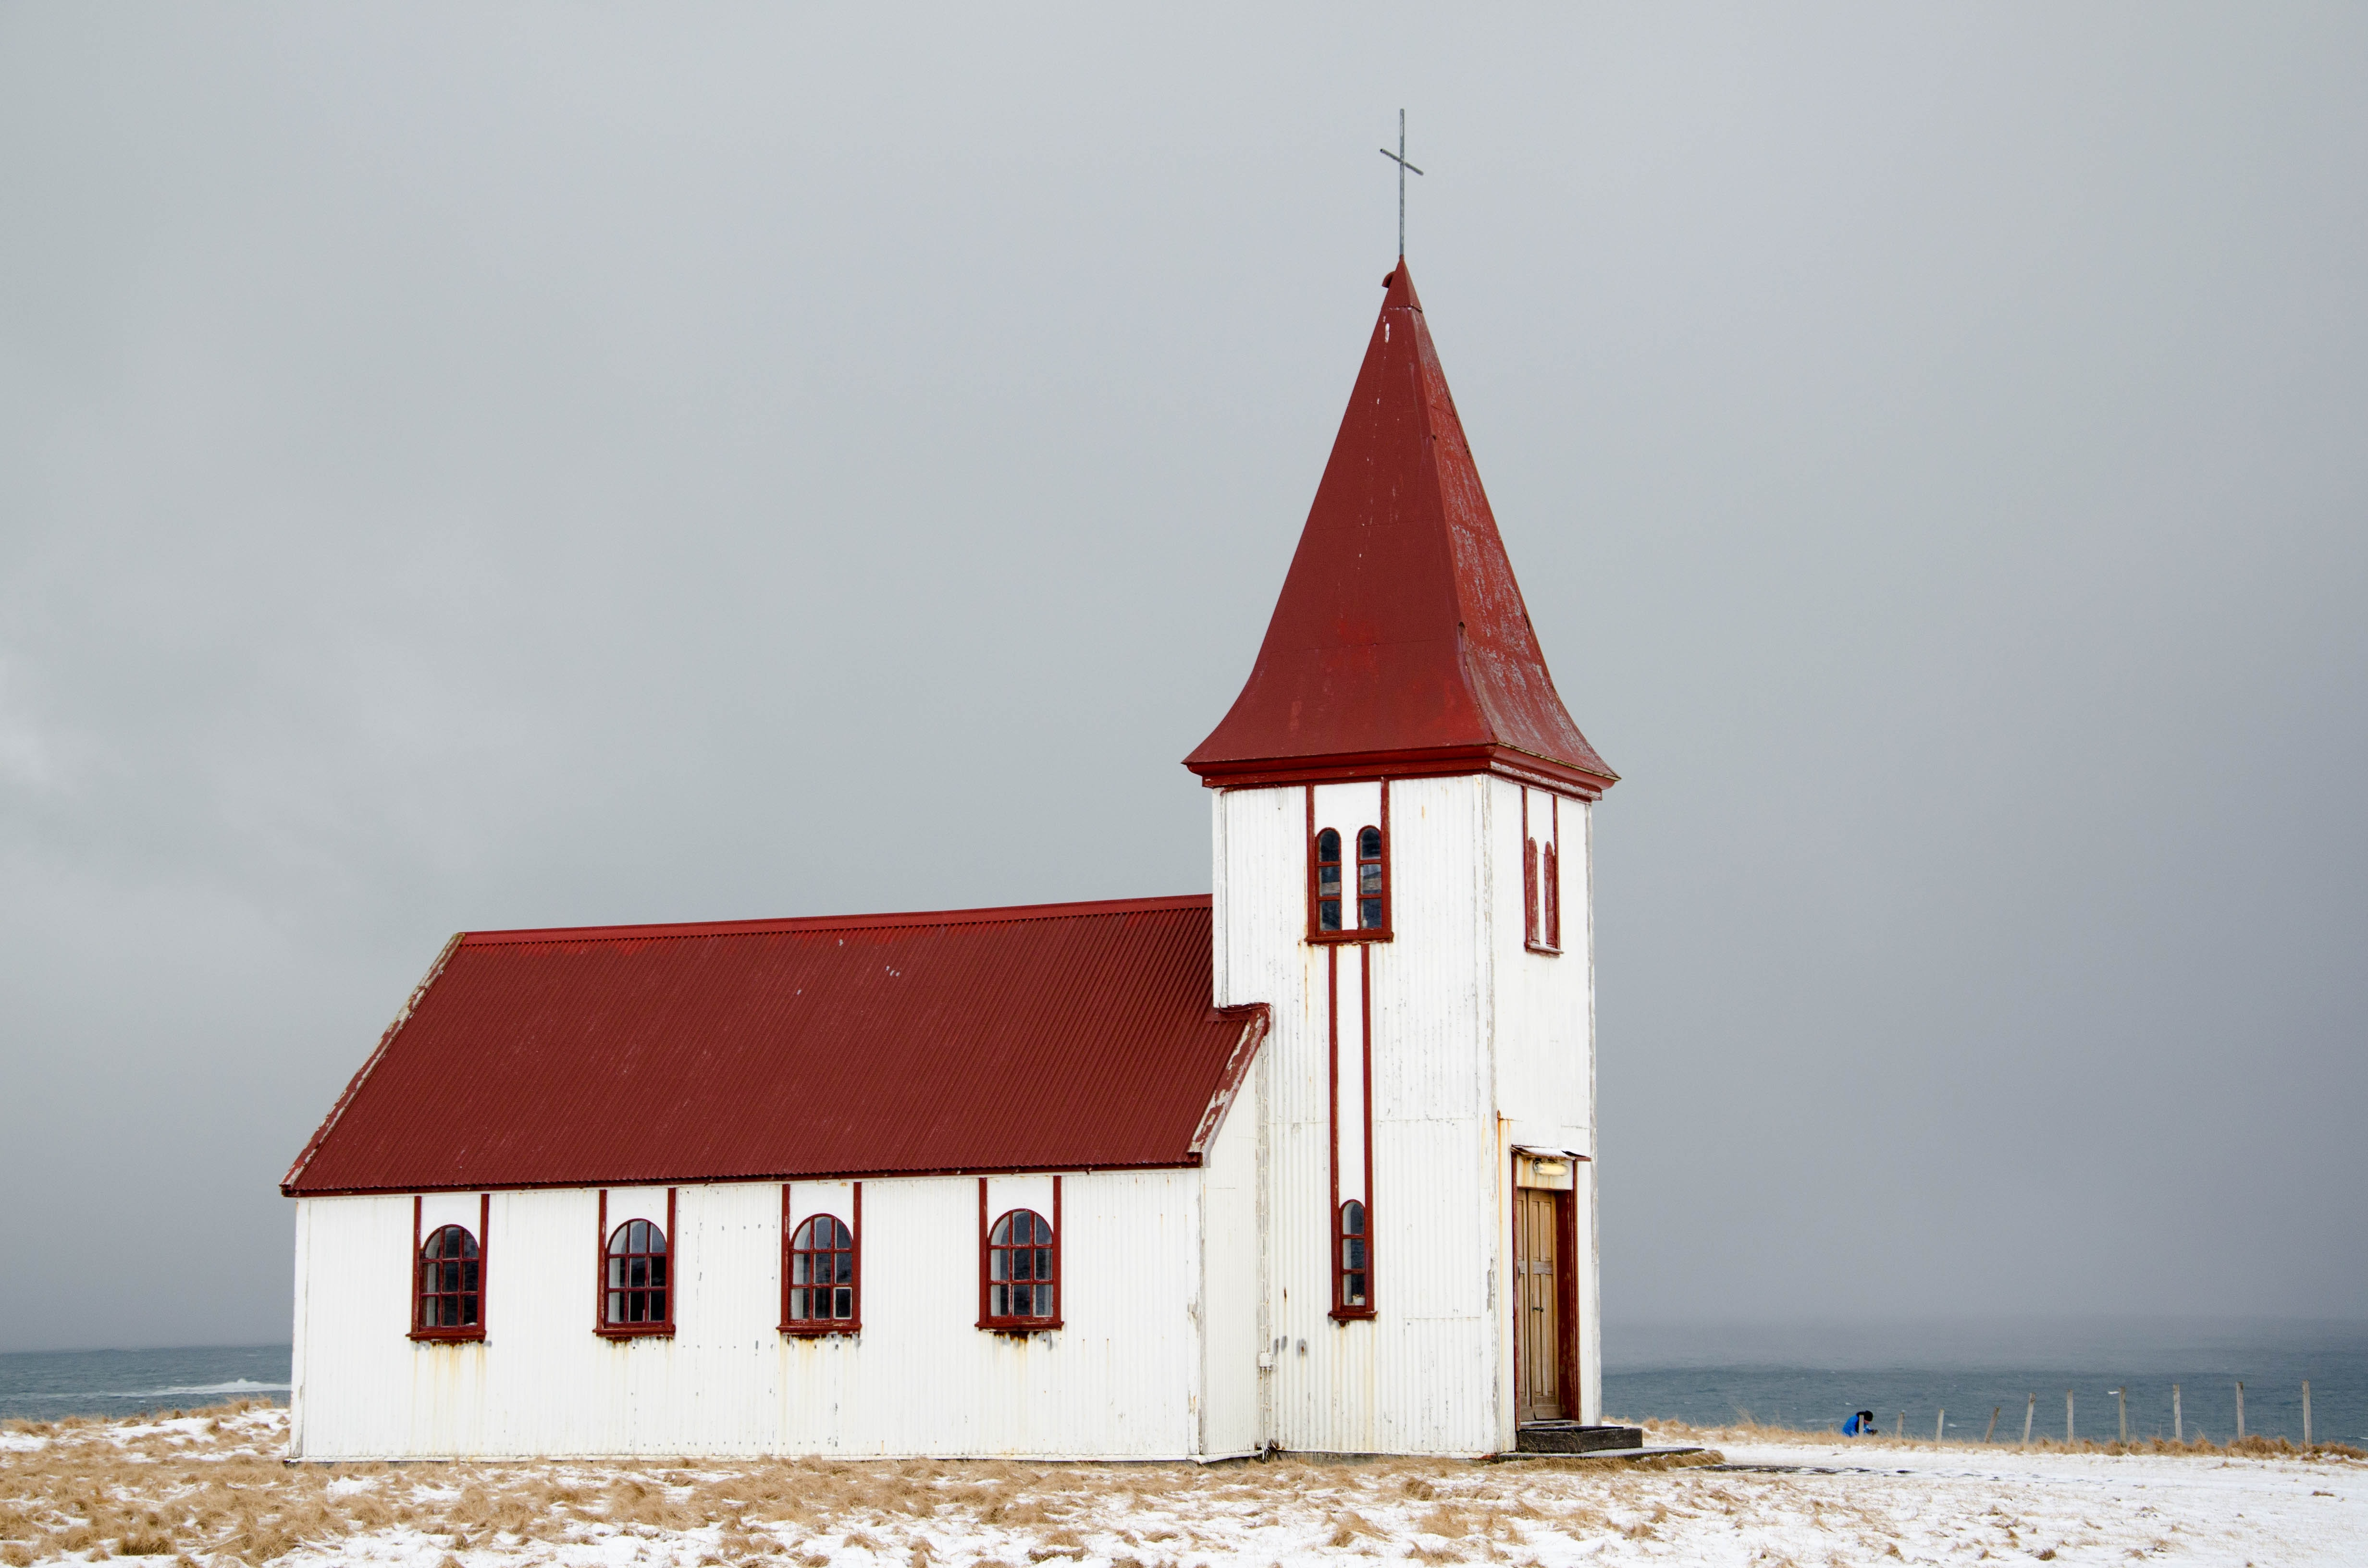 chapel near ocean under grey clouds